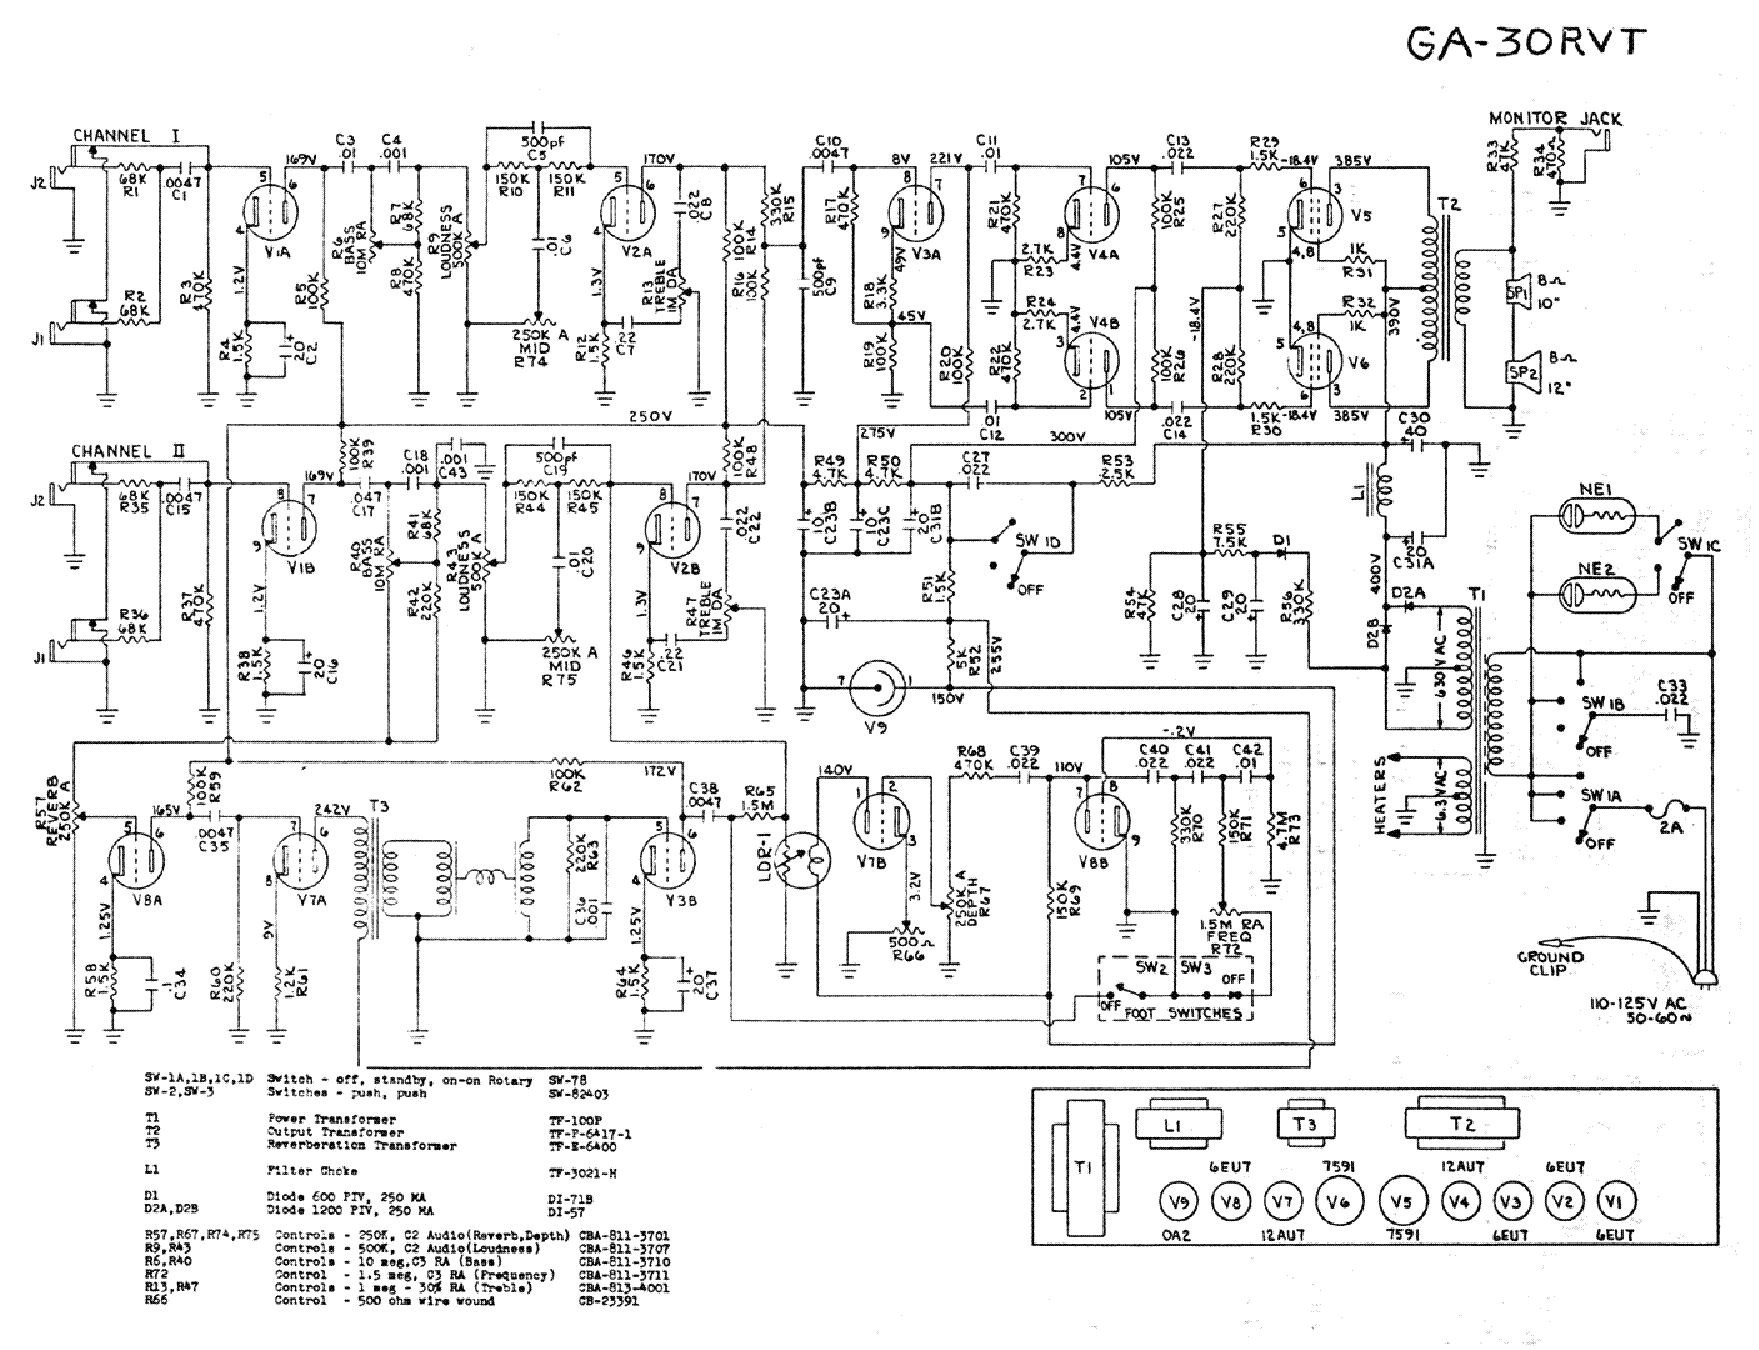 Ga Drawing At Free For Personal Use Of Manual Download Schematics Eeprom Repair Info Electronics 1759x1350 Gibson 30rvt Service